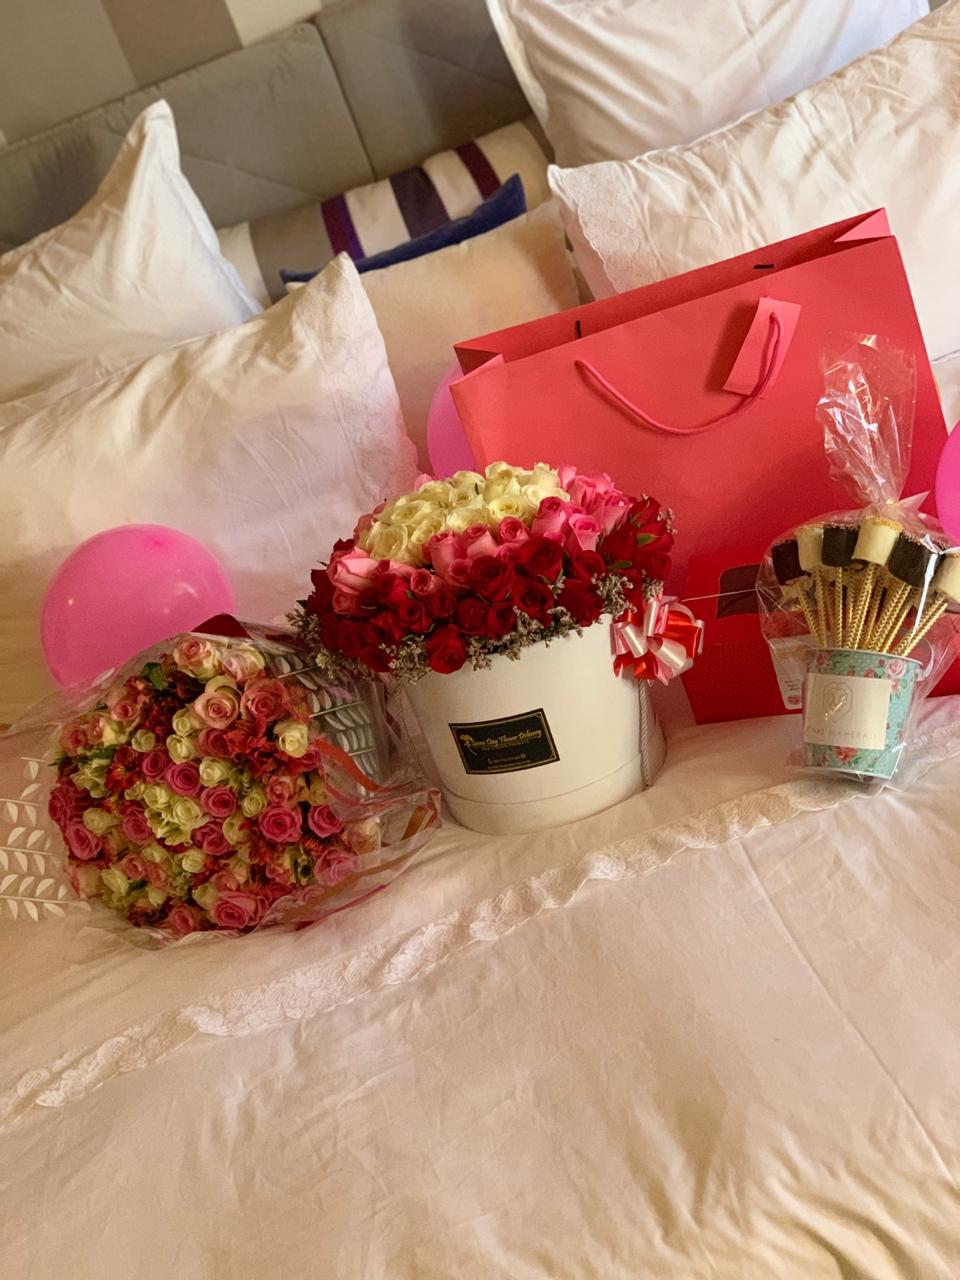 So there is a bunch of flowers for the birthday girl on the bed next to a cache of gifts lying close by..